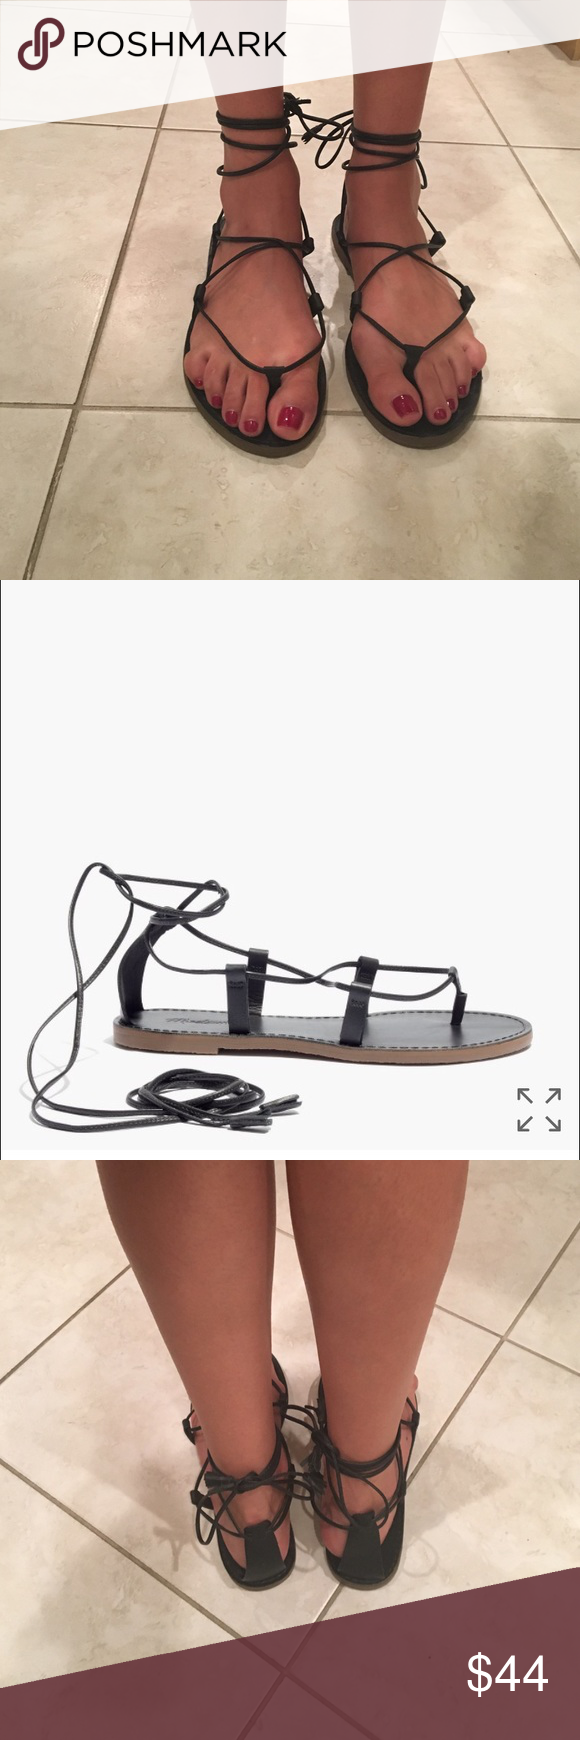 514ccd3351f Madewell Boardwalk lace-up sandal black size 8 Worn 3 times Madewell Shoes  Sandals